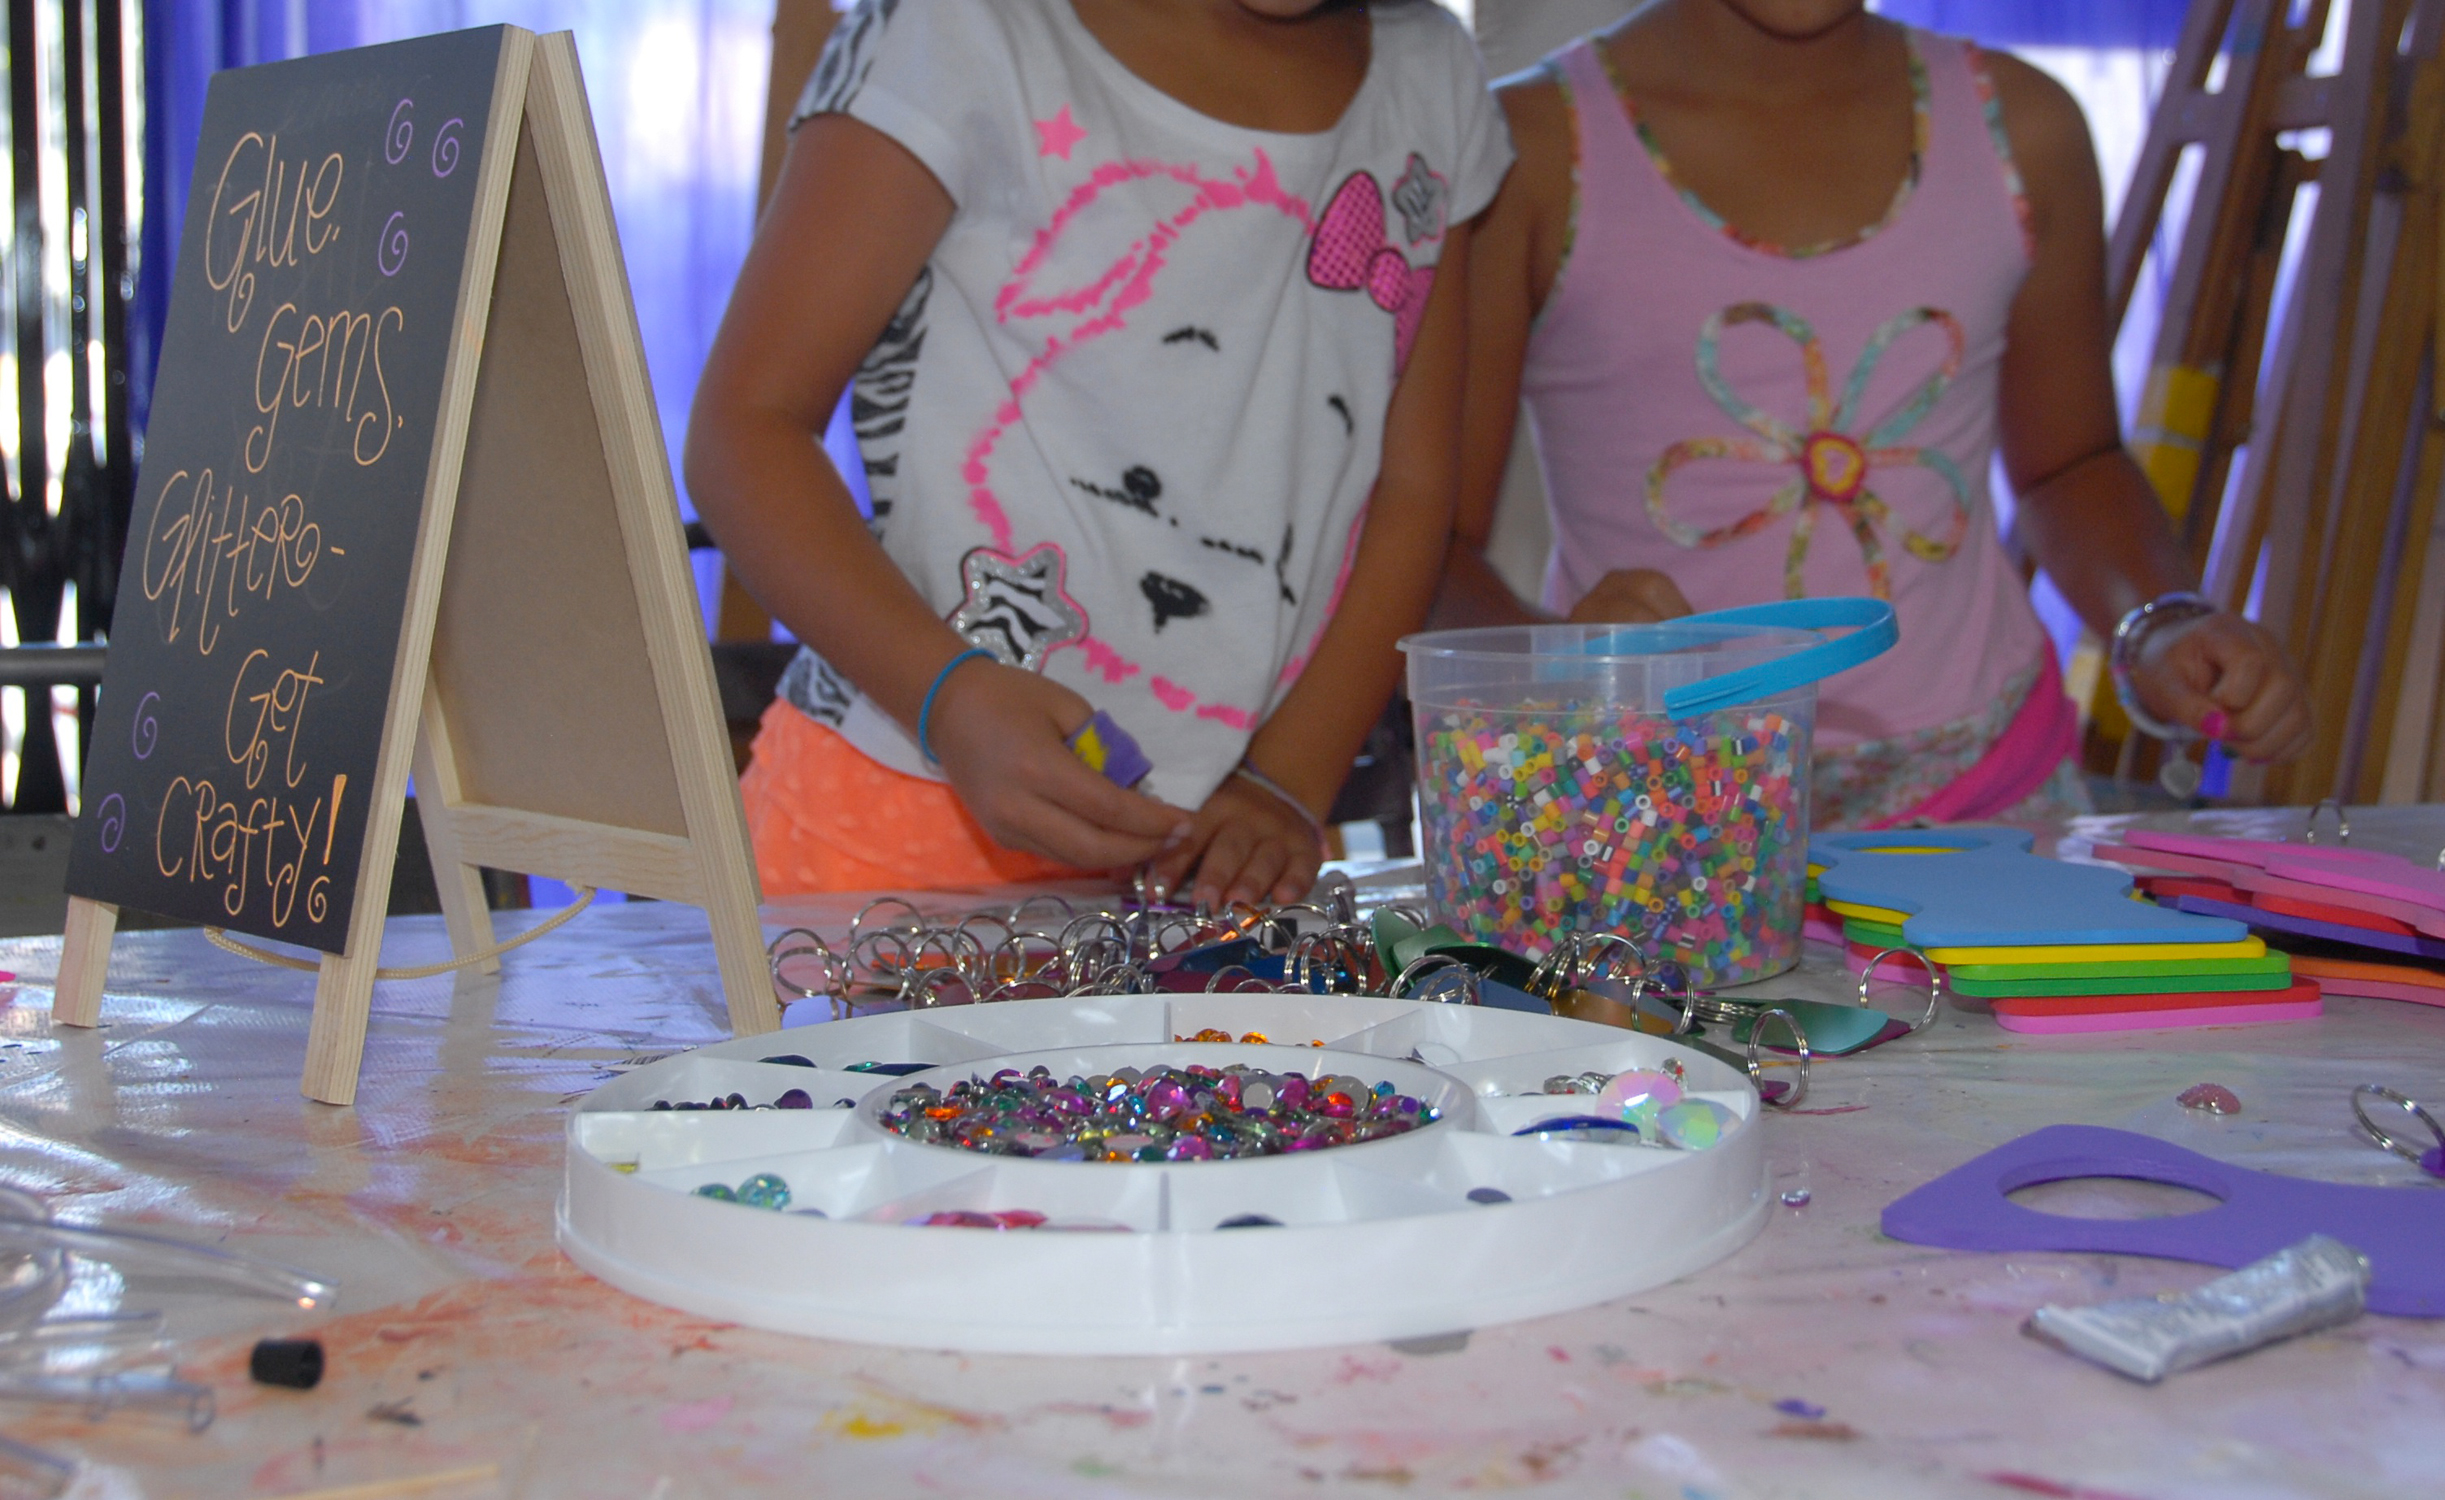 tarynco-events-kids-party-art-carnival-themed-bedazzle-station.jpg